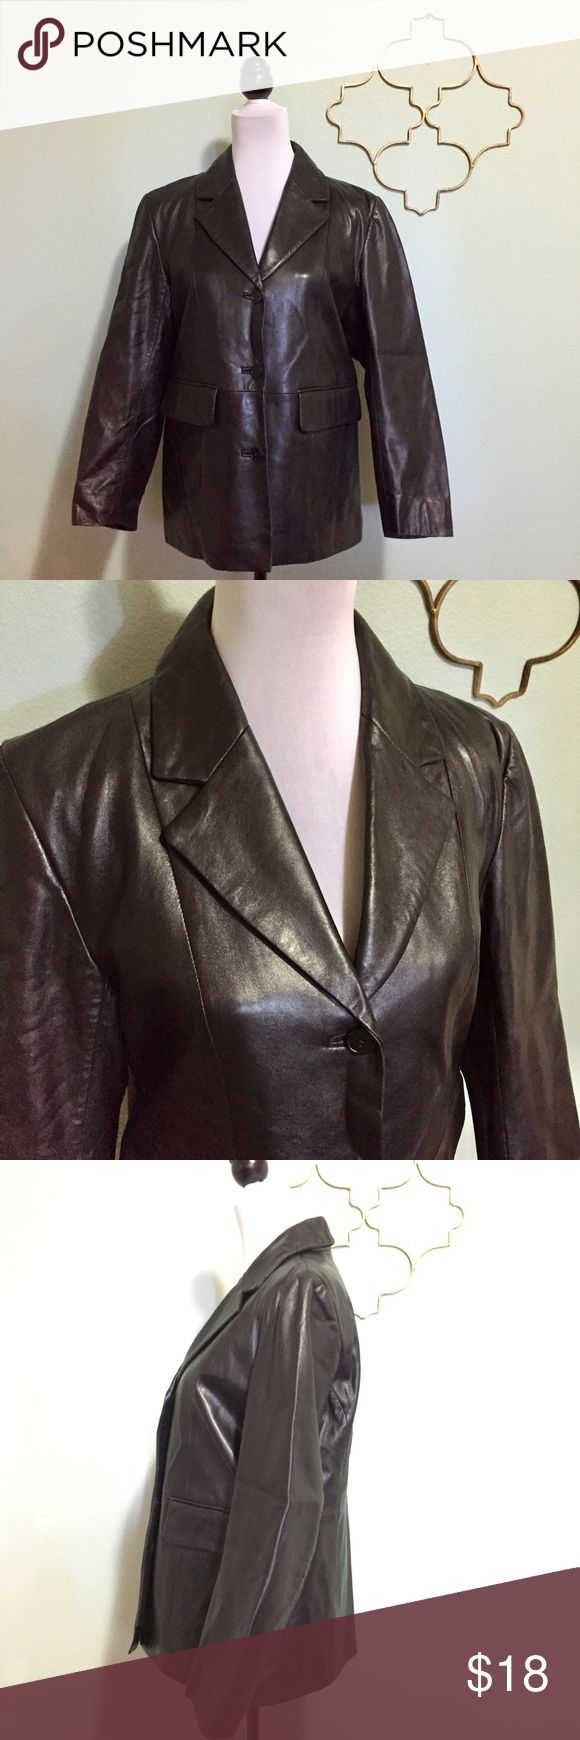 100% Italian lambskin jacket size medium Gorgeously soft 100% Italian lambskin jacket in black.  Great Northwest brand. Petite Medium. Approximate Measurements: chest 38 inches, shoulder to hem 26 inches, sleeves 28 inches. Great Northwest Jackets & Coats